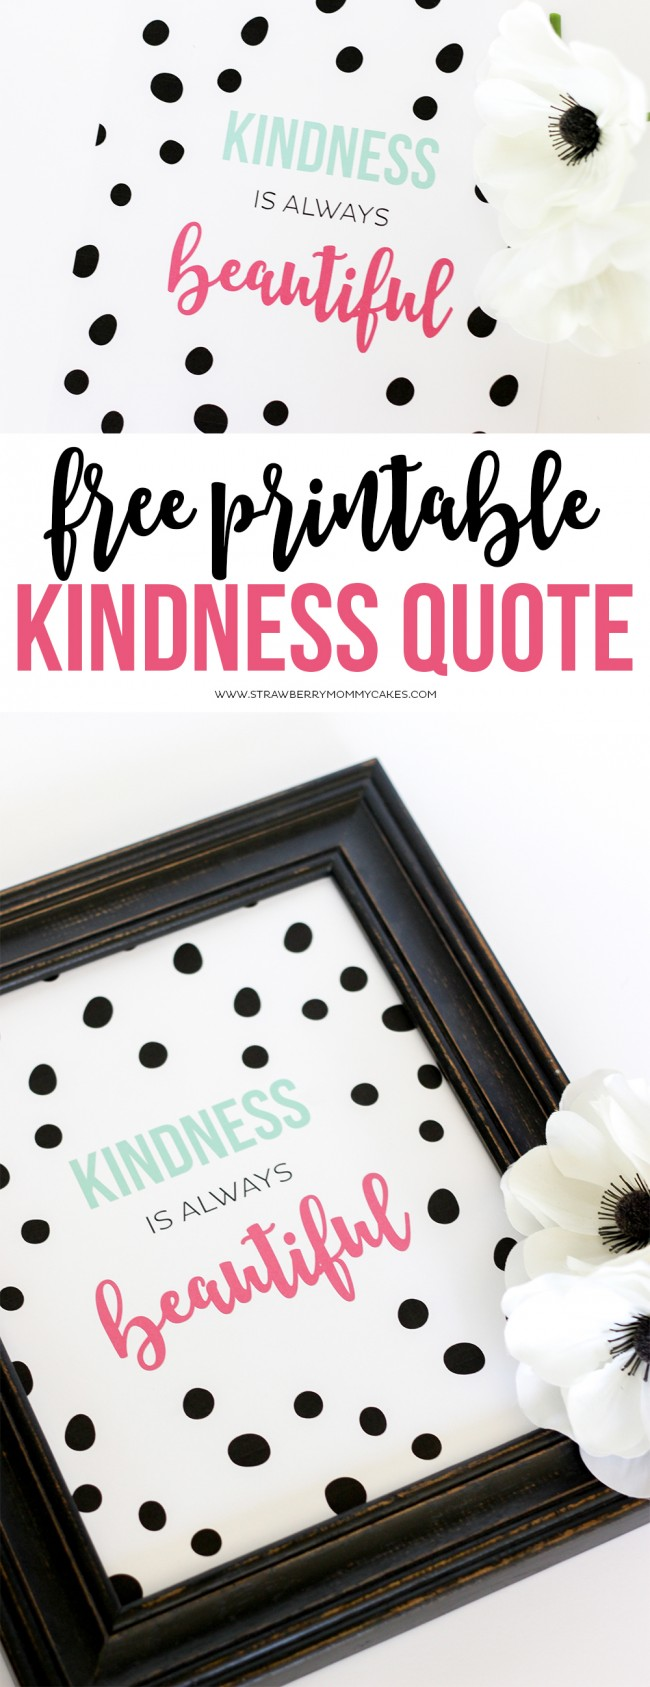 Download this FREE Printable Wall Art to remind yourself that Kindness is ALWAYS Beautiful!